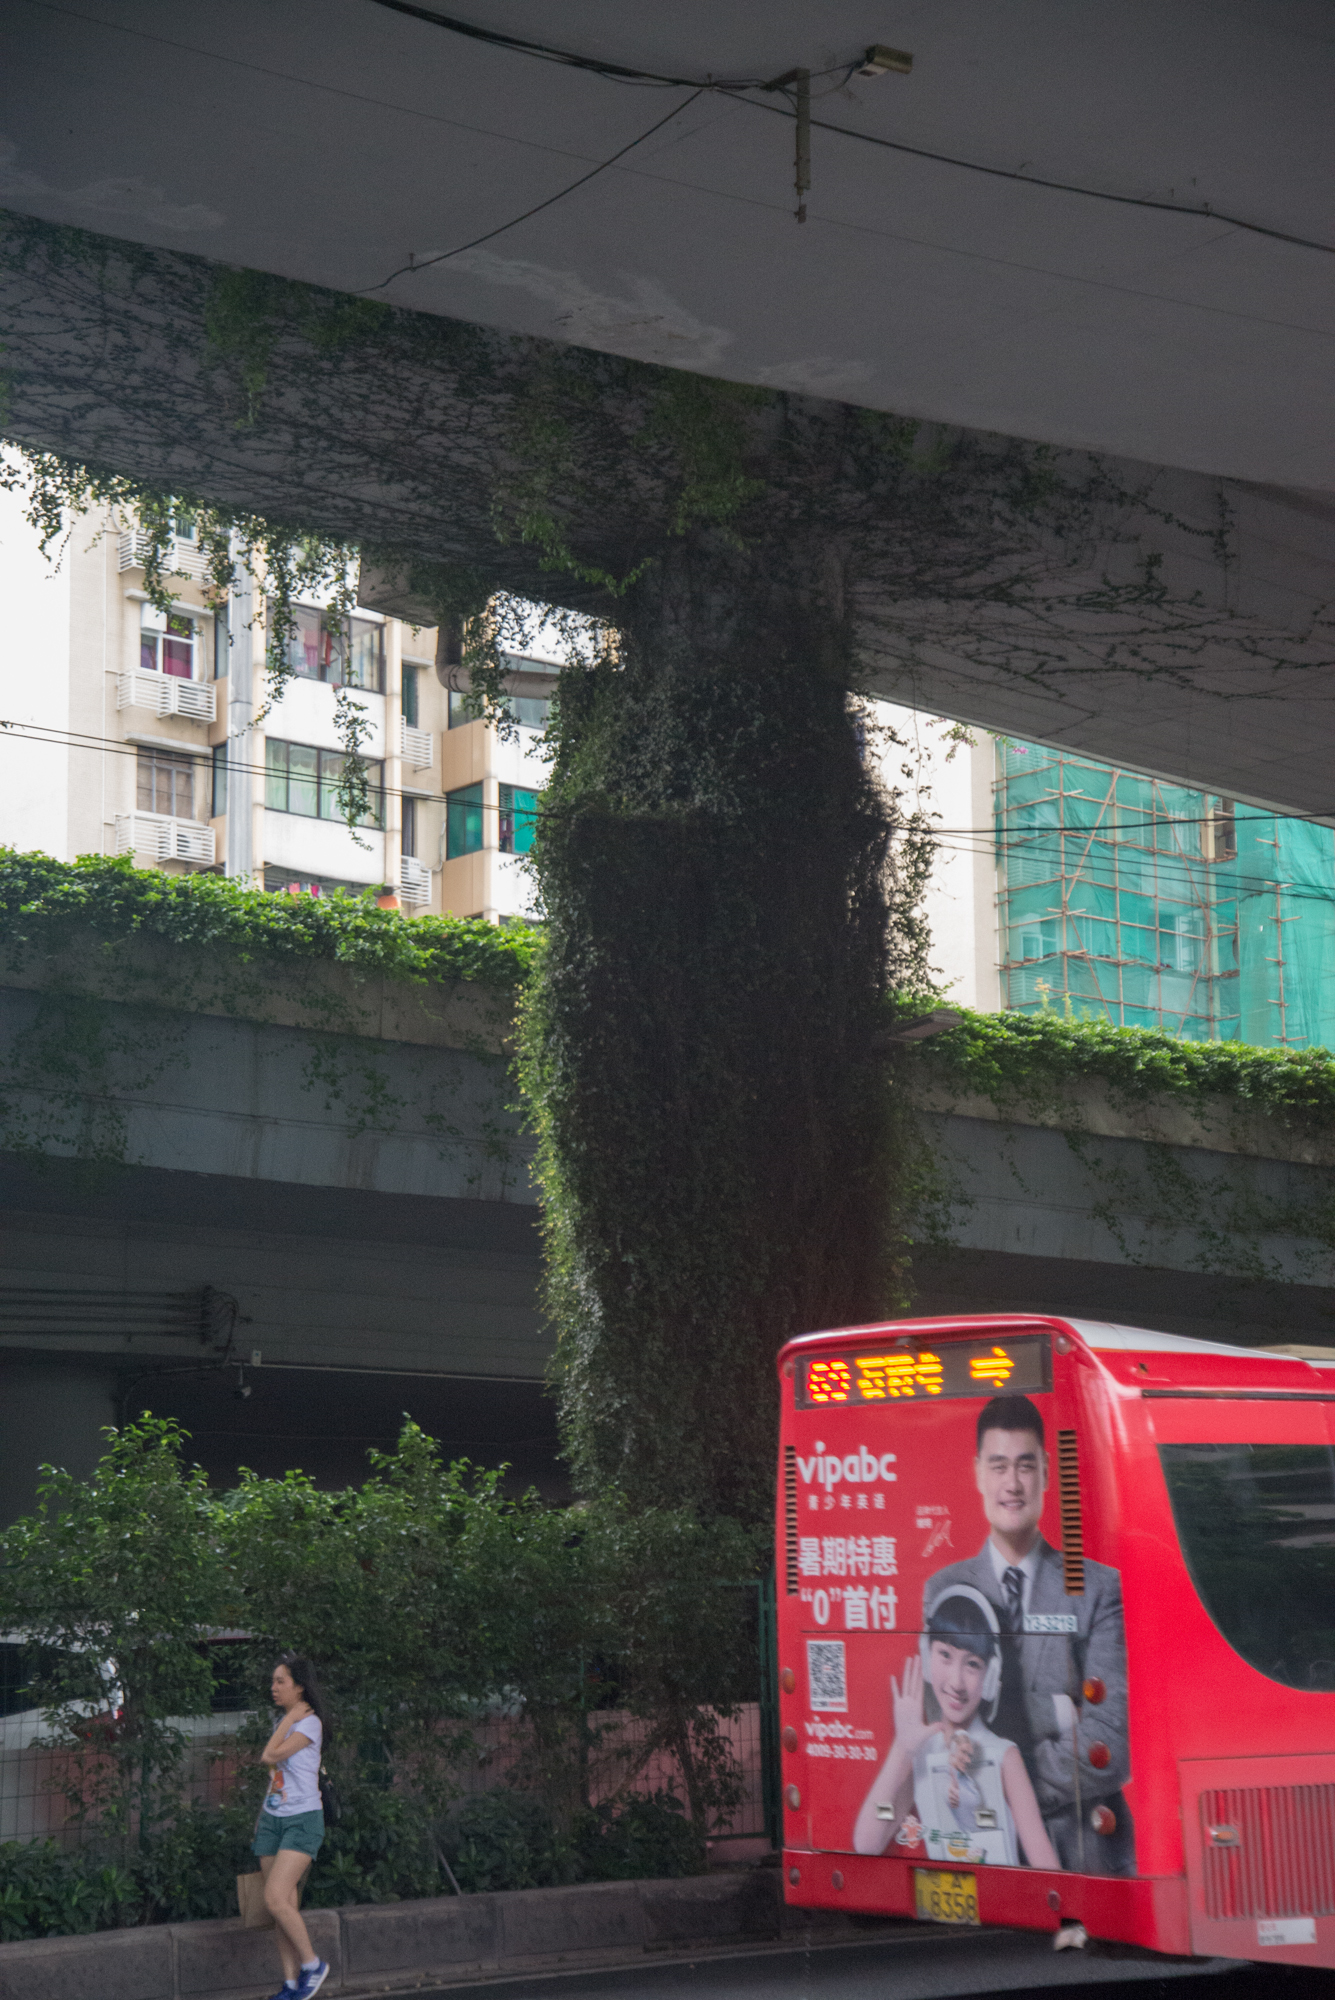 Vine and Overpass